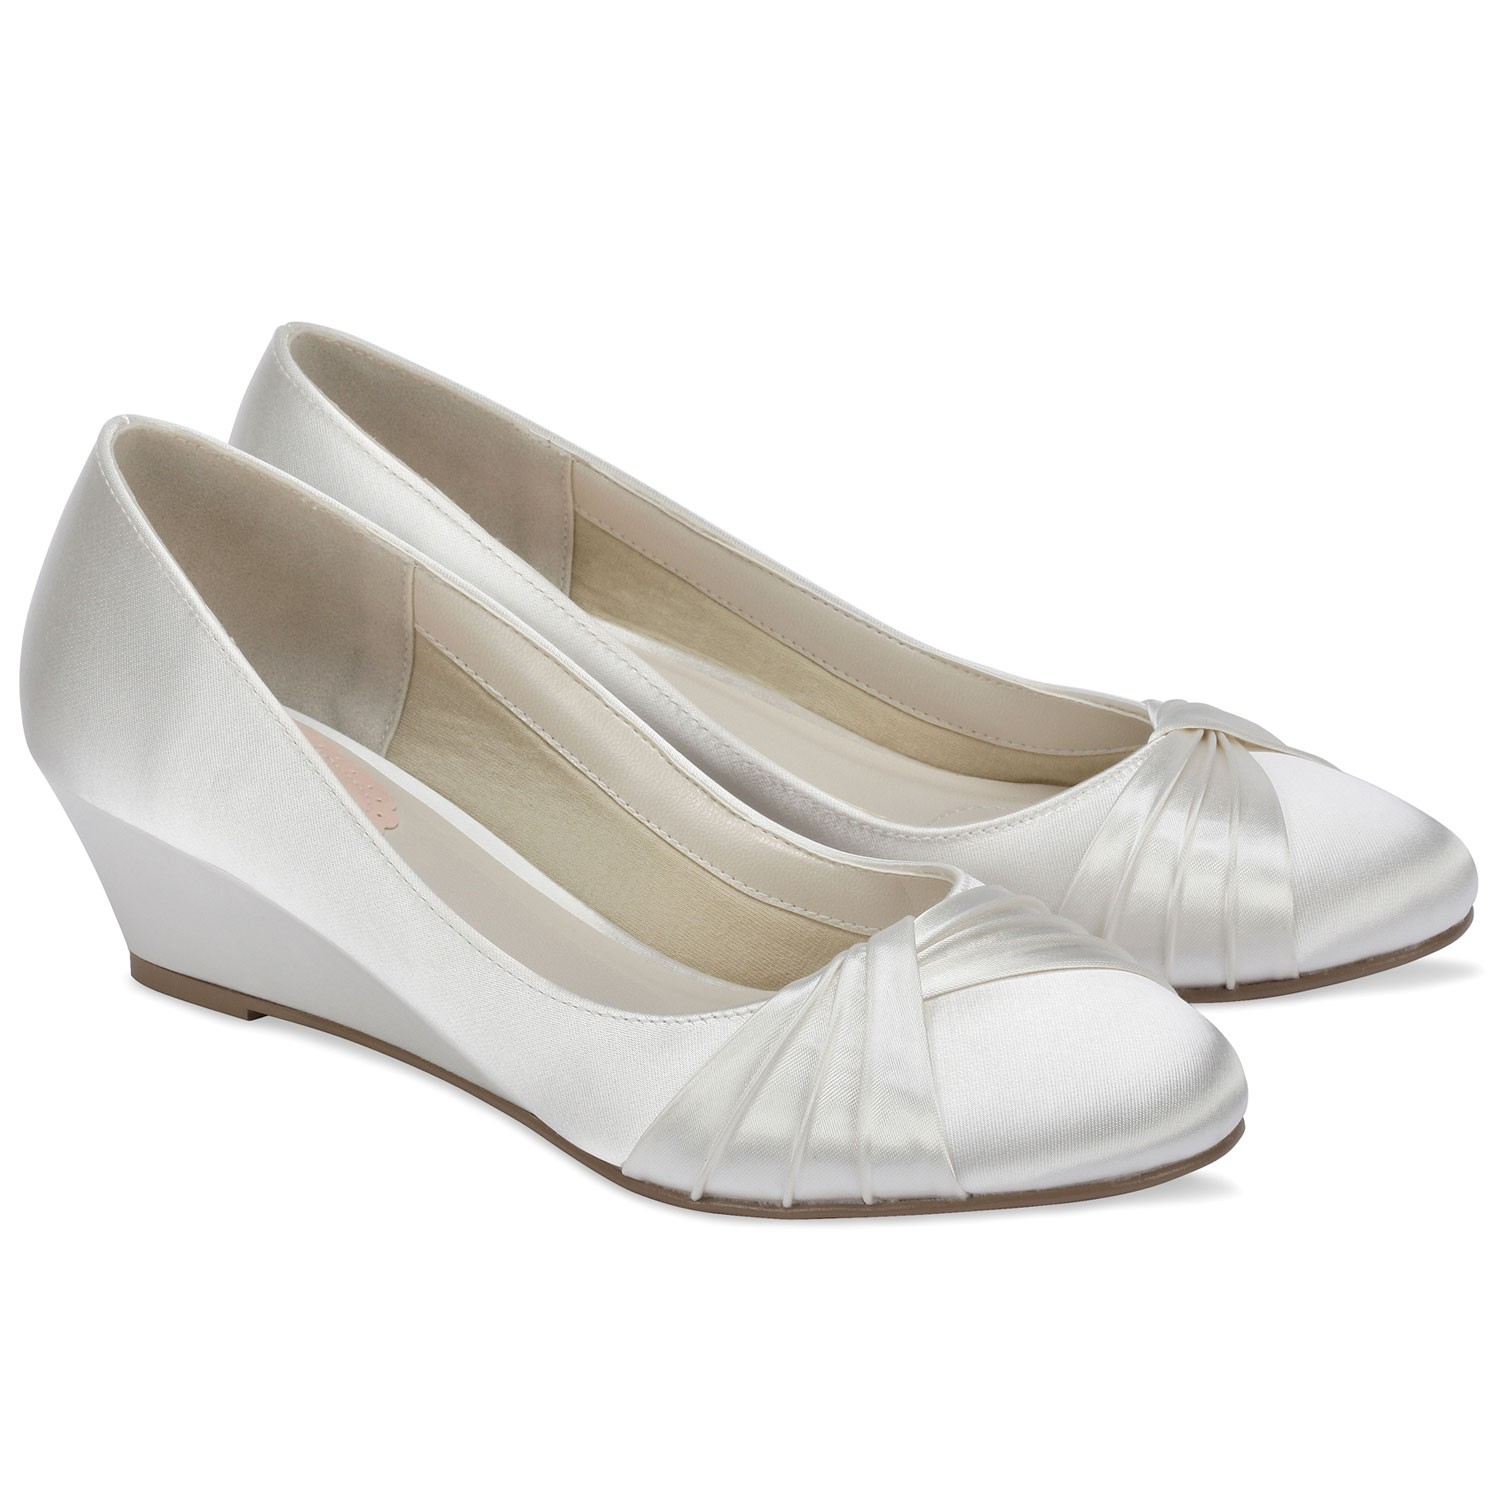 chaussures mariage gleam - Chaussure Compense Mariage